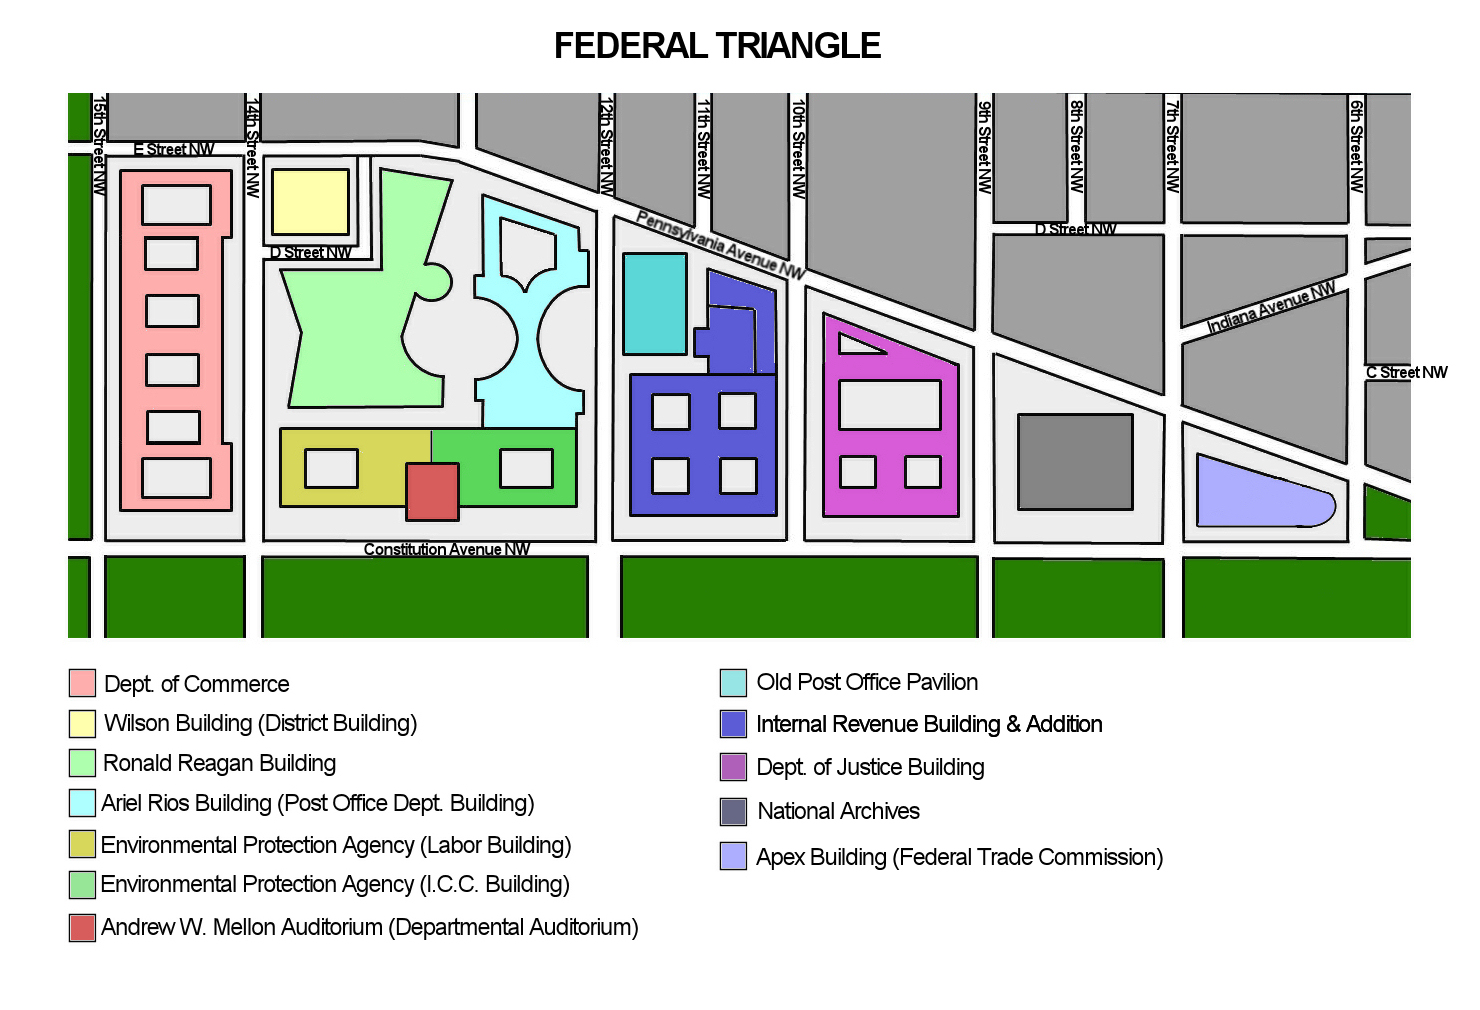 Federal Triangle Wikipedia Diagram Of A Network Architecture In Multistory Building